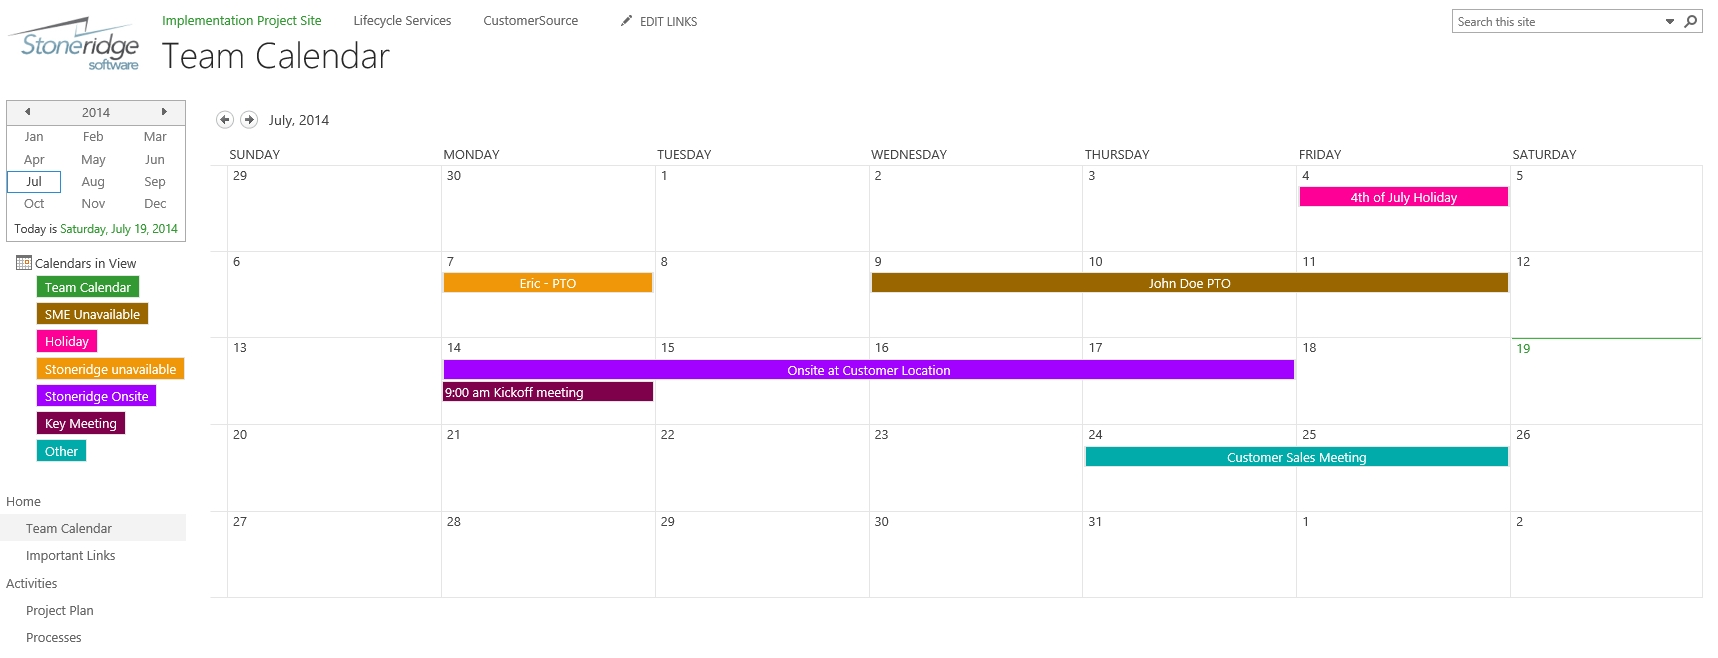 Creating A Color Coded Calendar In Sharepoint Online | Stoneridge